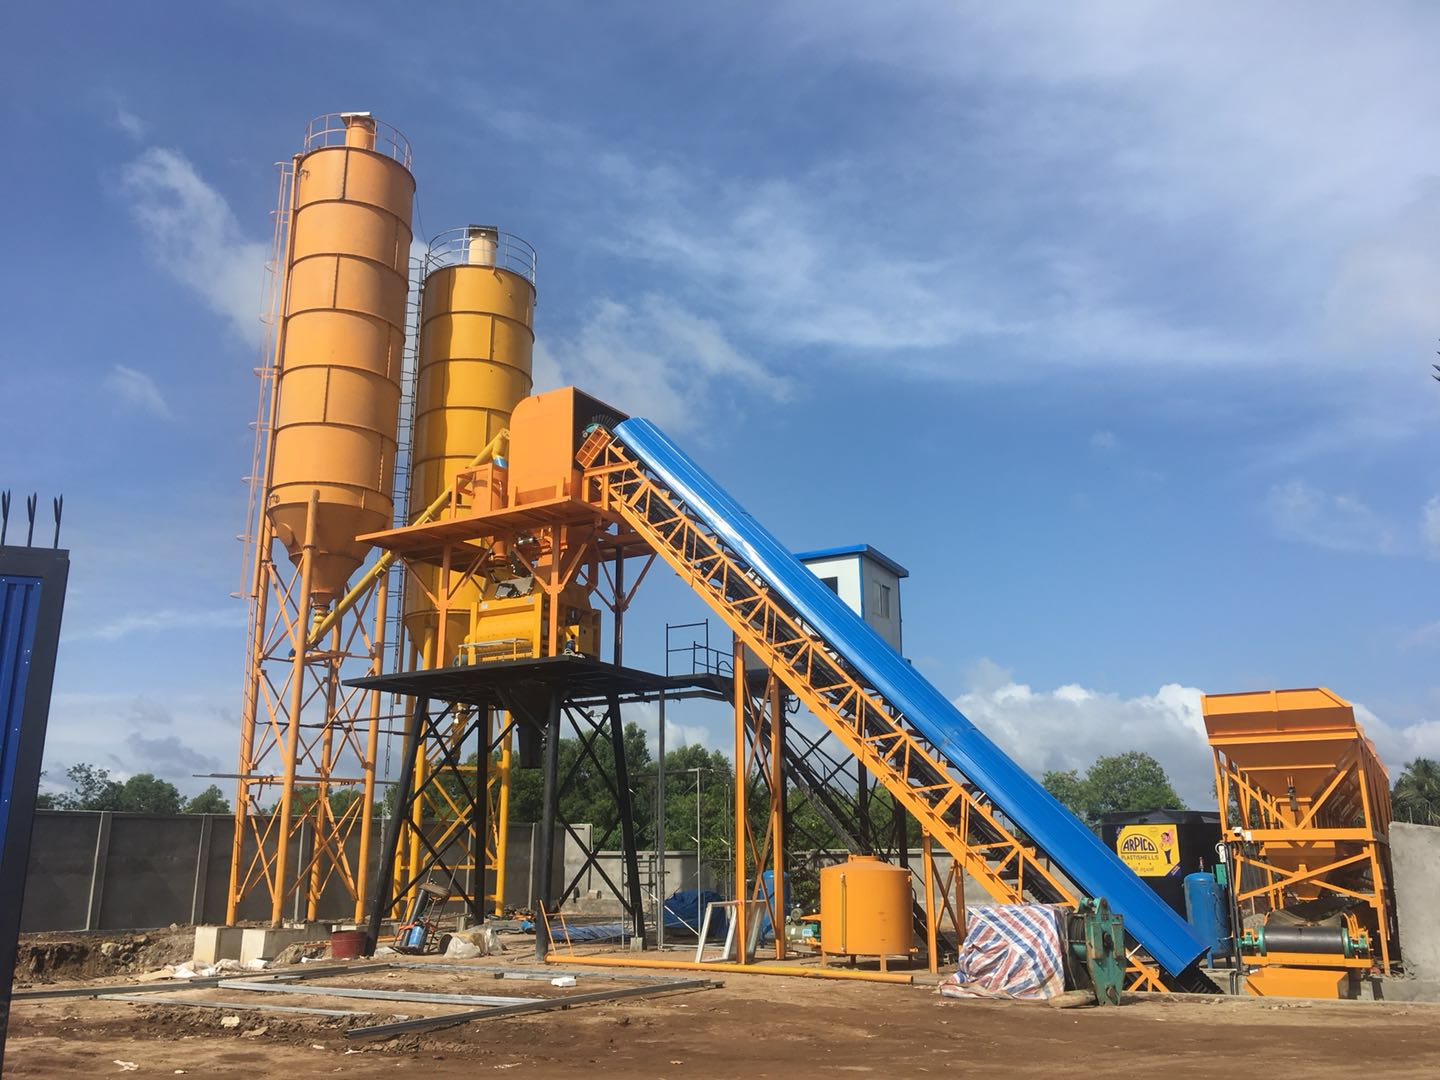 Aj 60 Concrete Batching Plant Of Aimix Group Was Installed